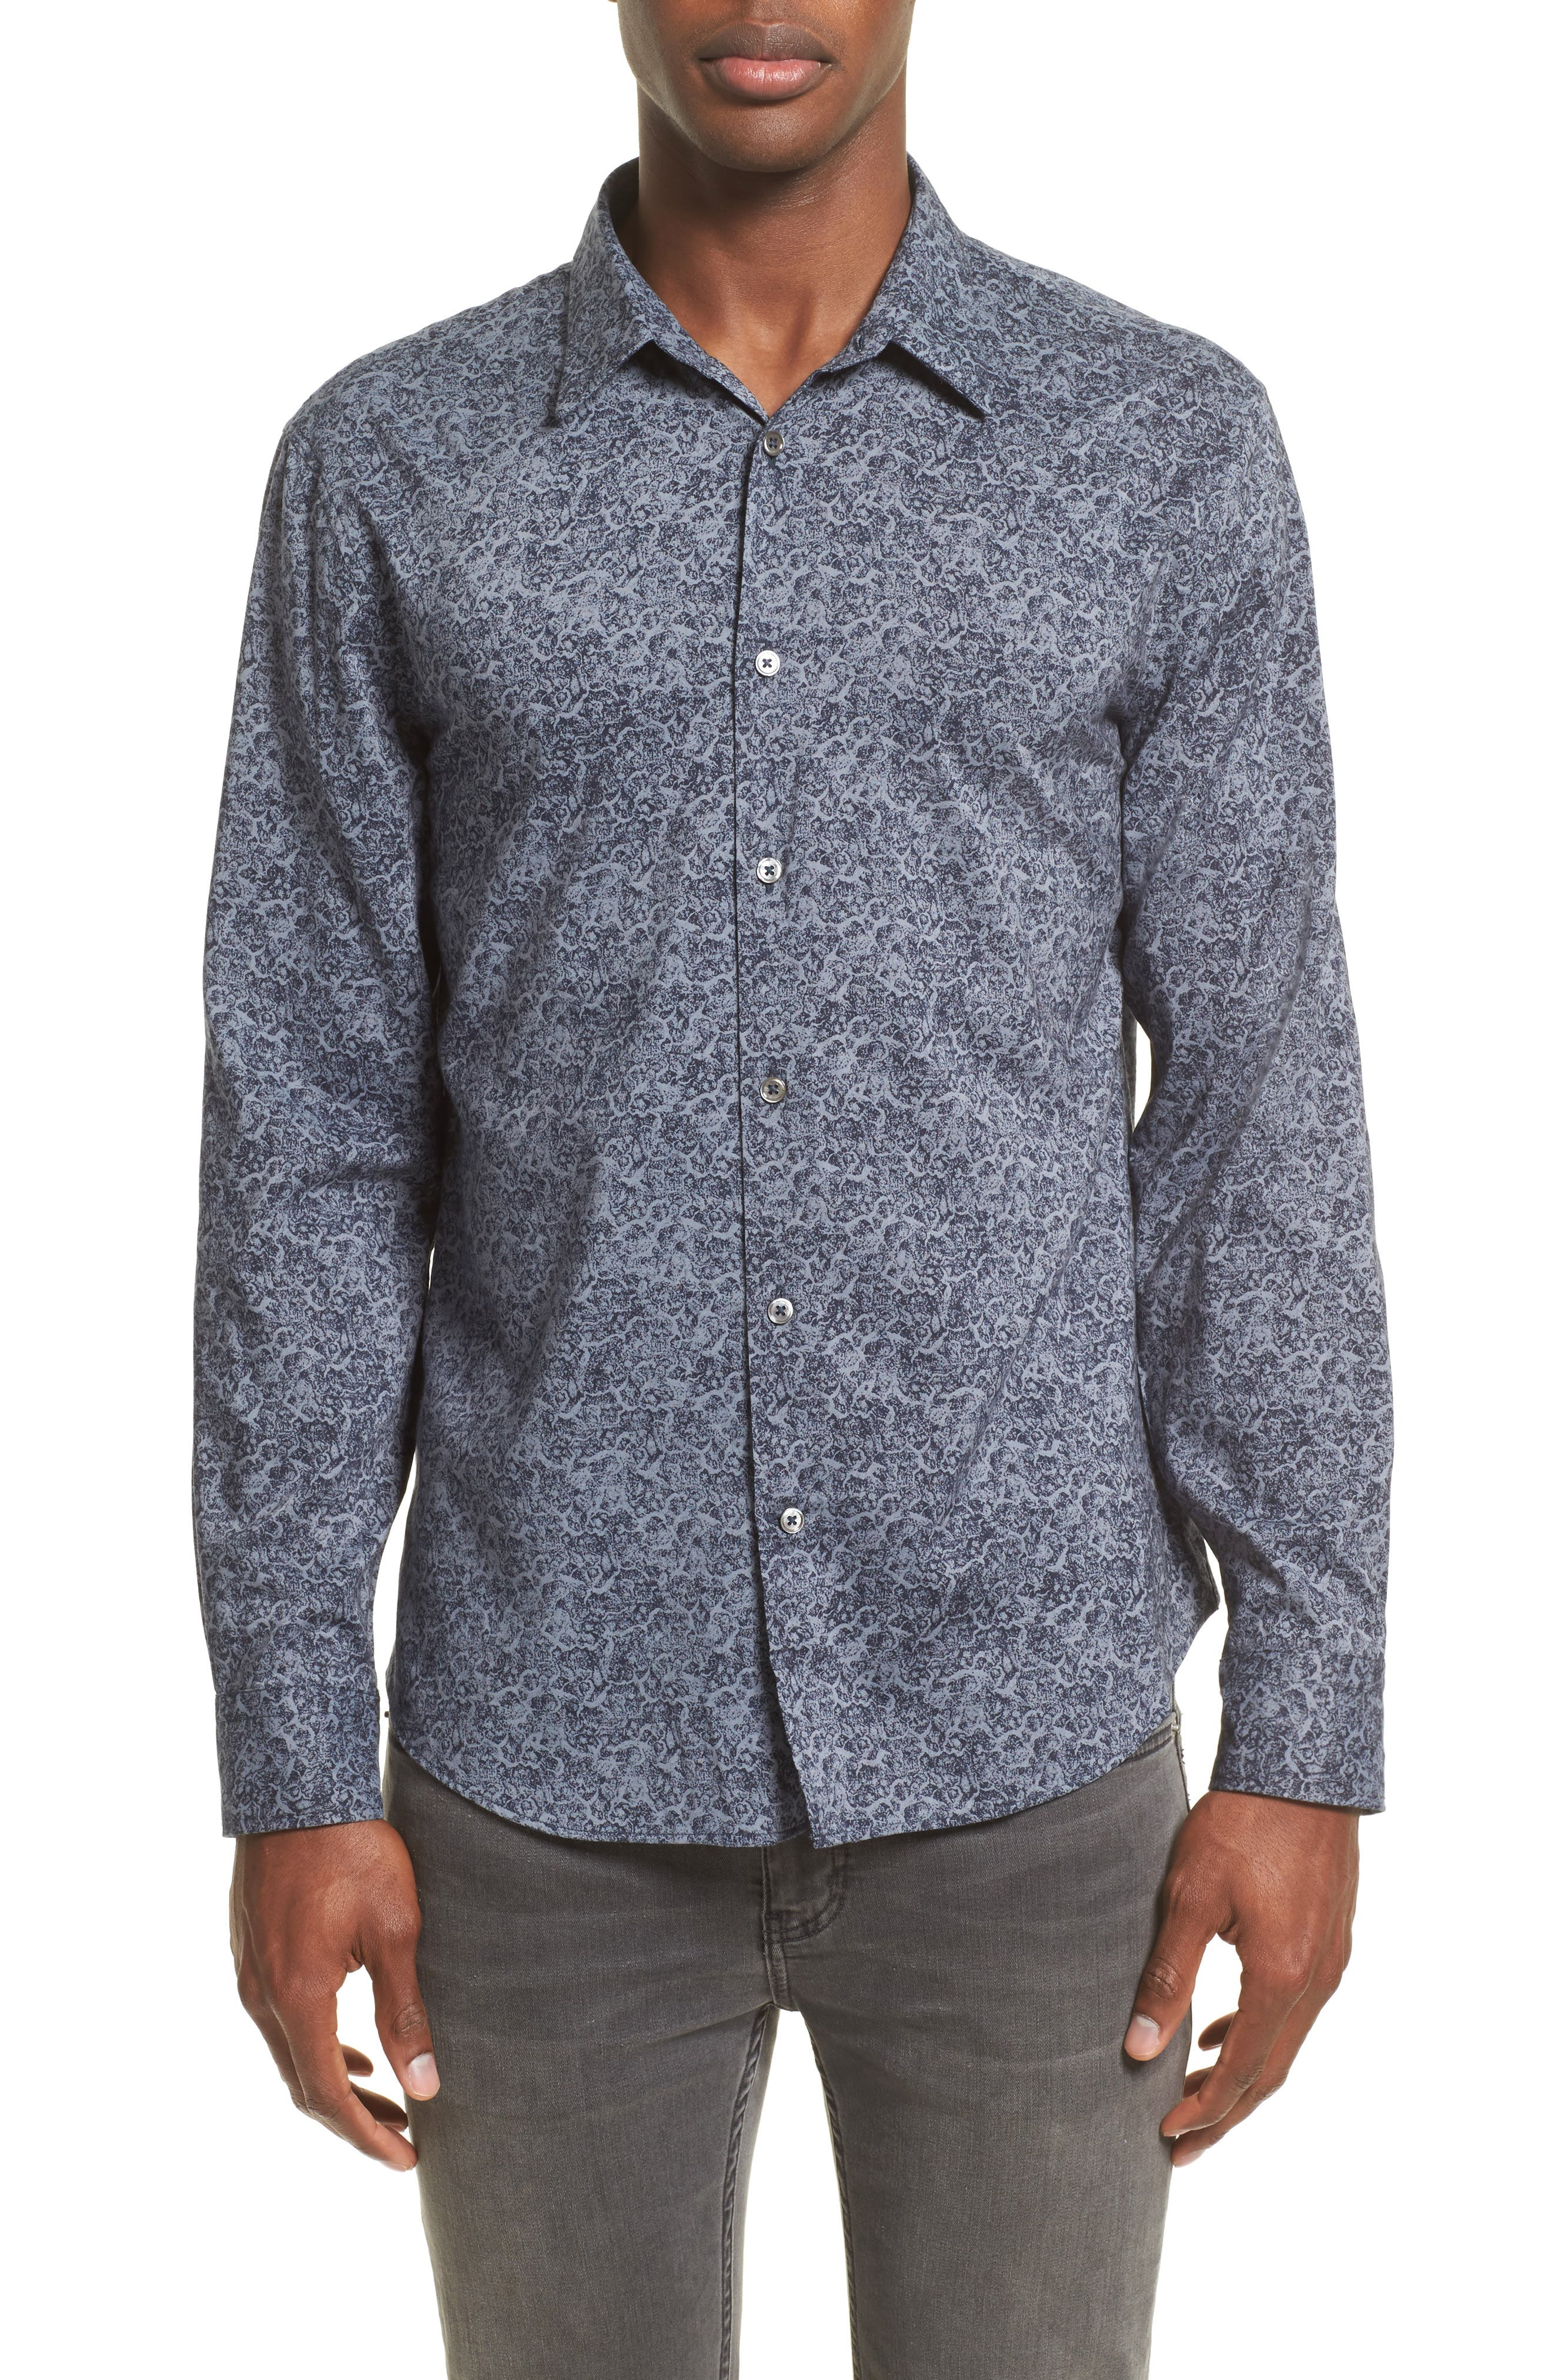 Alternate Image 1 Selected - John Varvatos Collection Classic Fit Paisley Sport Shirt